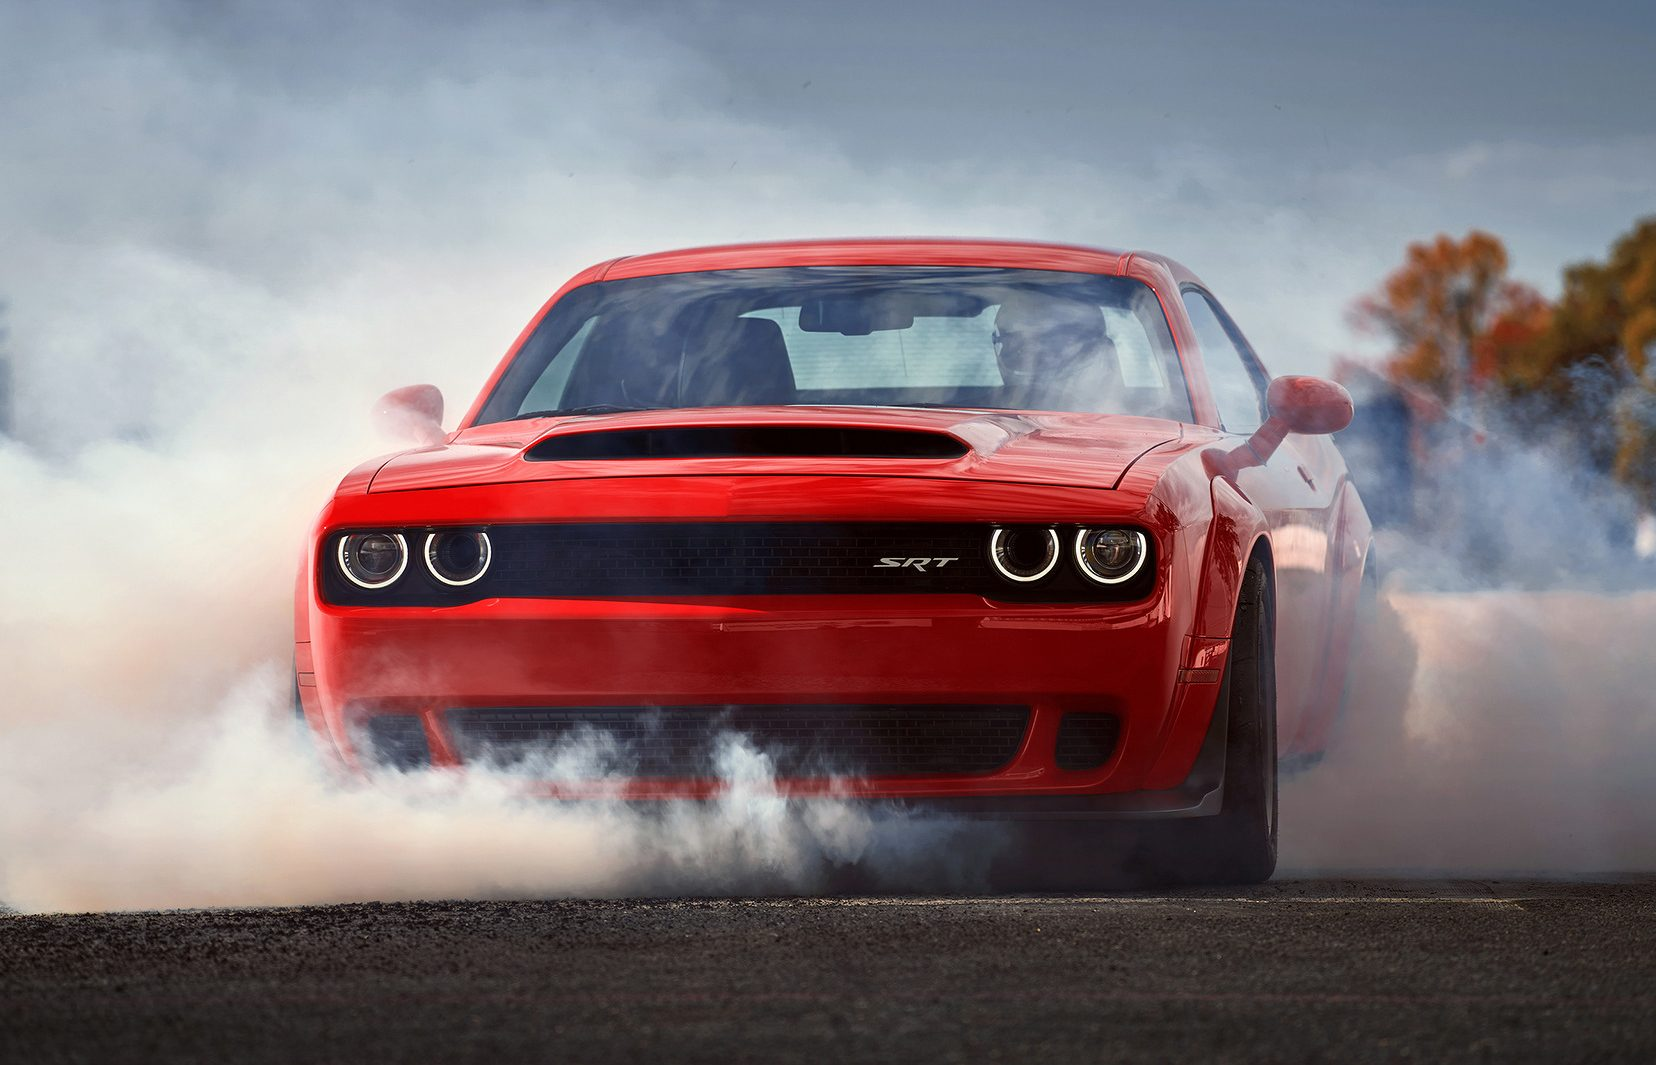 Such a Tease: Fiat Chrysler's At It Again - The Truth About Cars